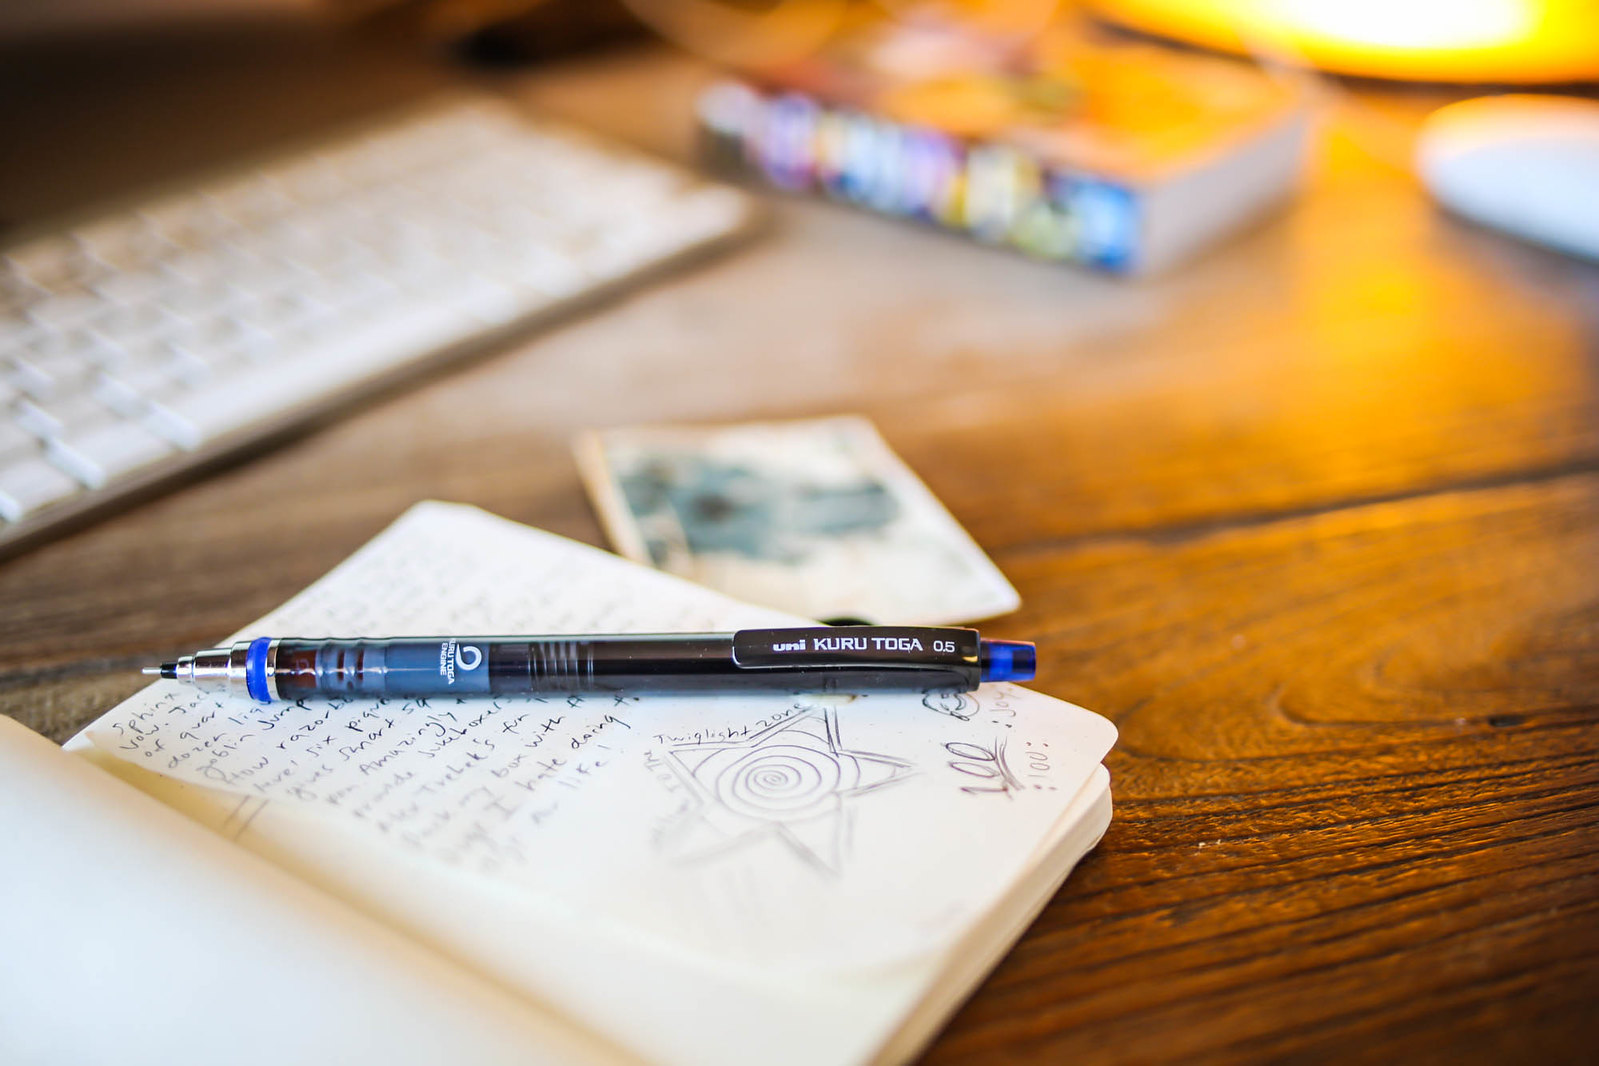 10 Best Mechanical Pencils For Drawing And Writing 2019